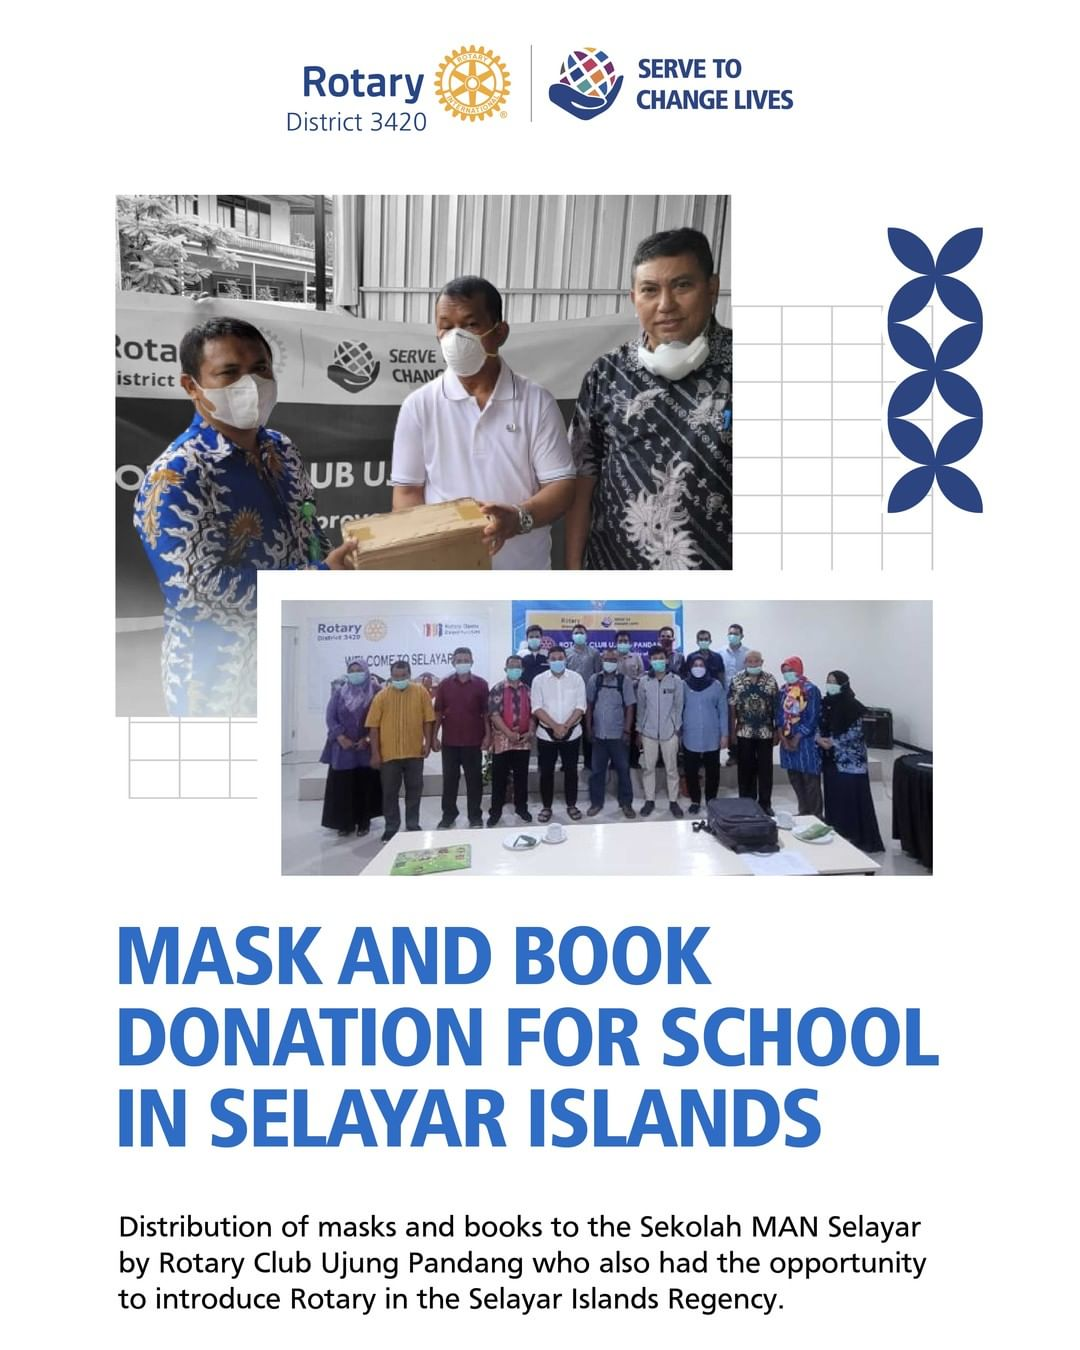 Mask and Book Donation for School in Selayar Island